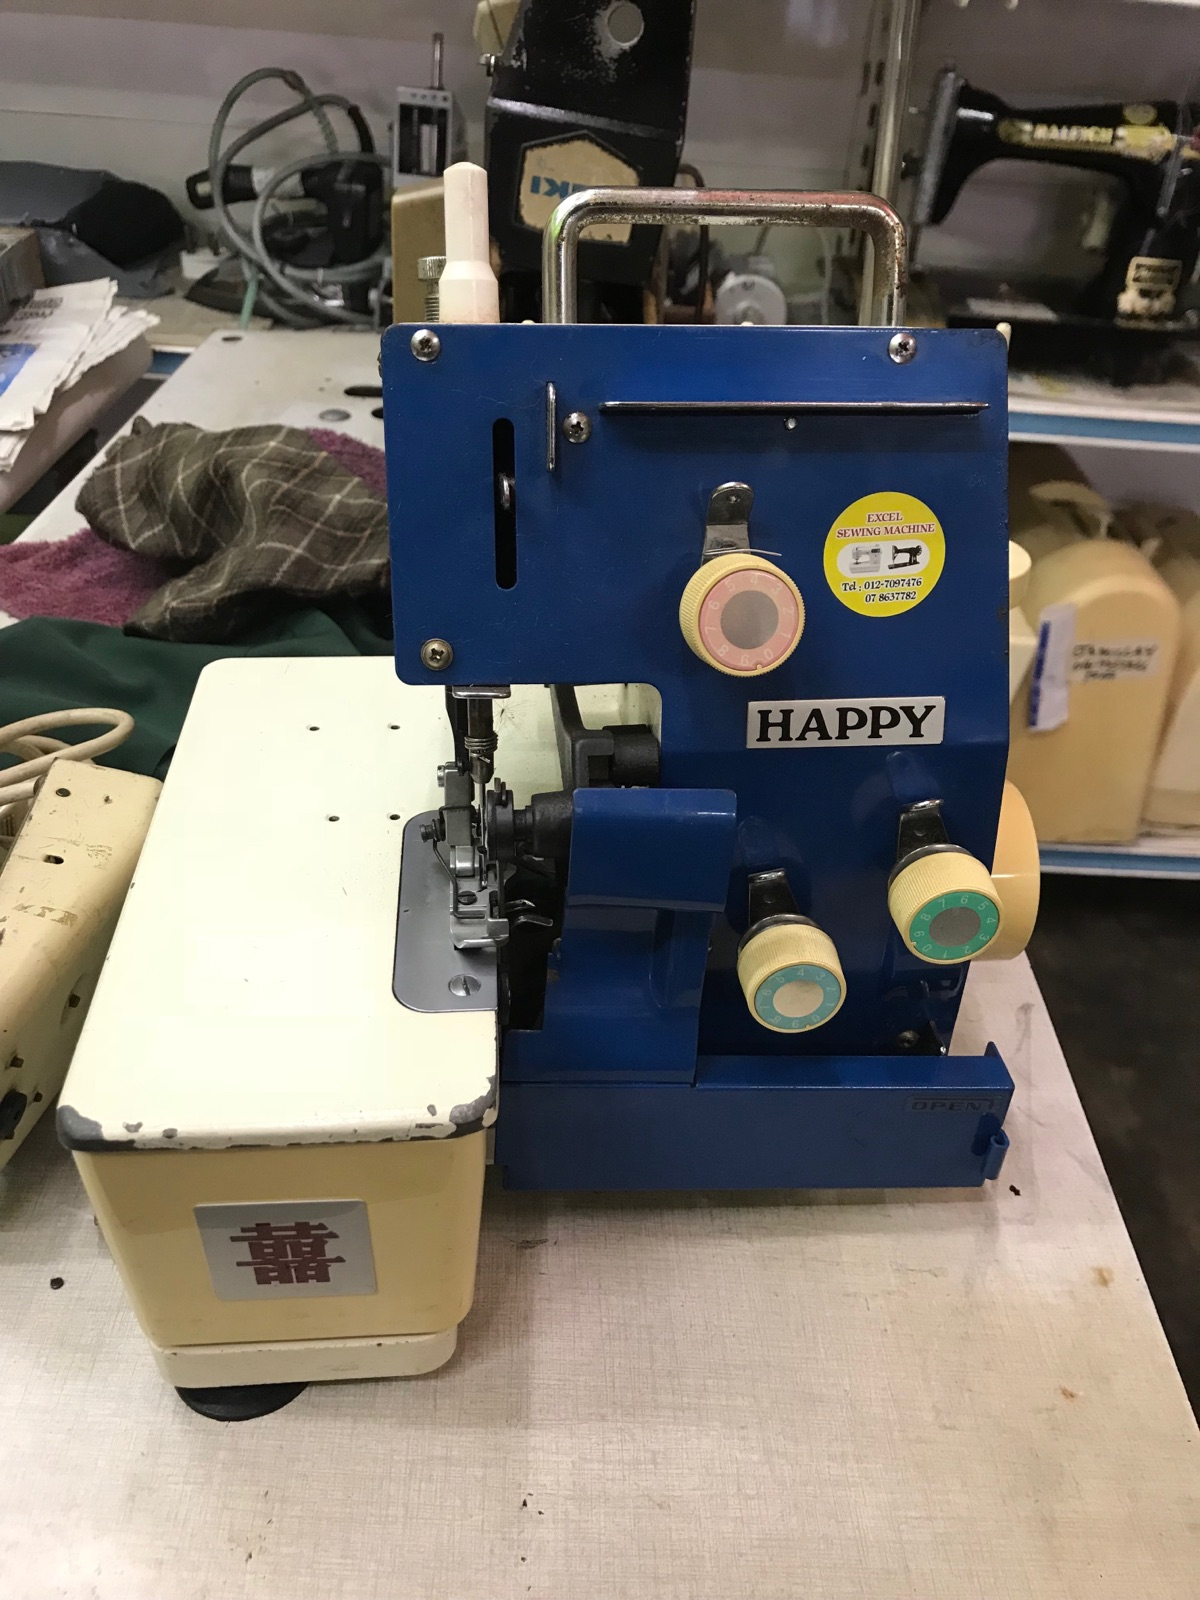 Second Hand Happy Overlock Sewing Machine